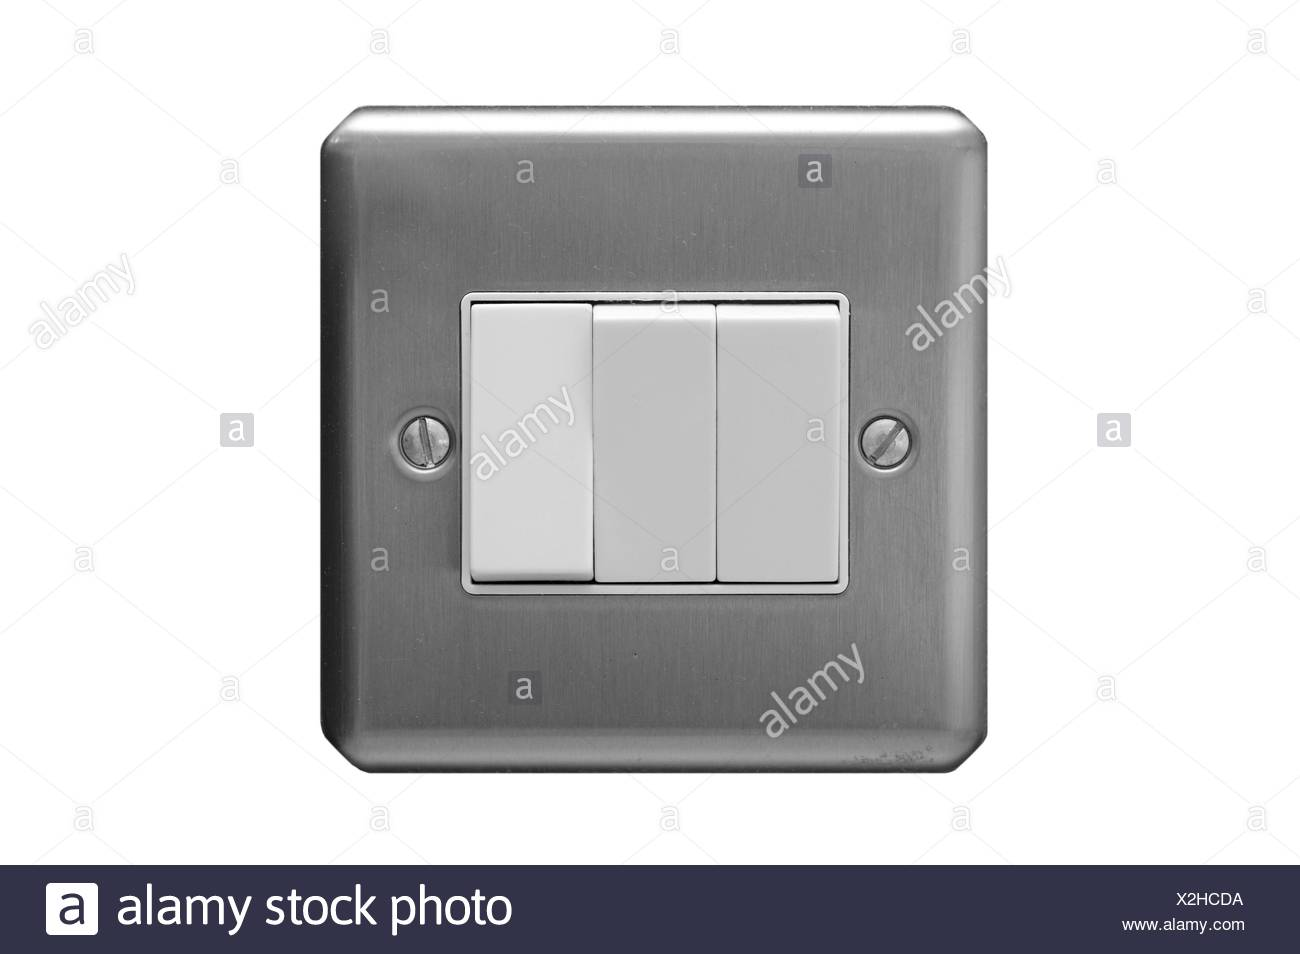 Light switch with three buttons Stock Photo: 276978166 - Alamy